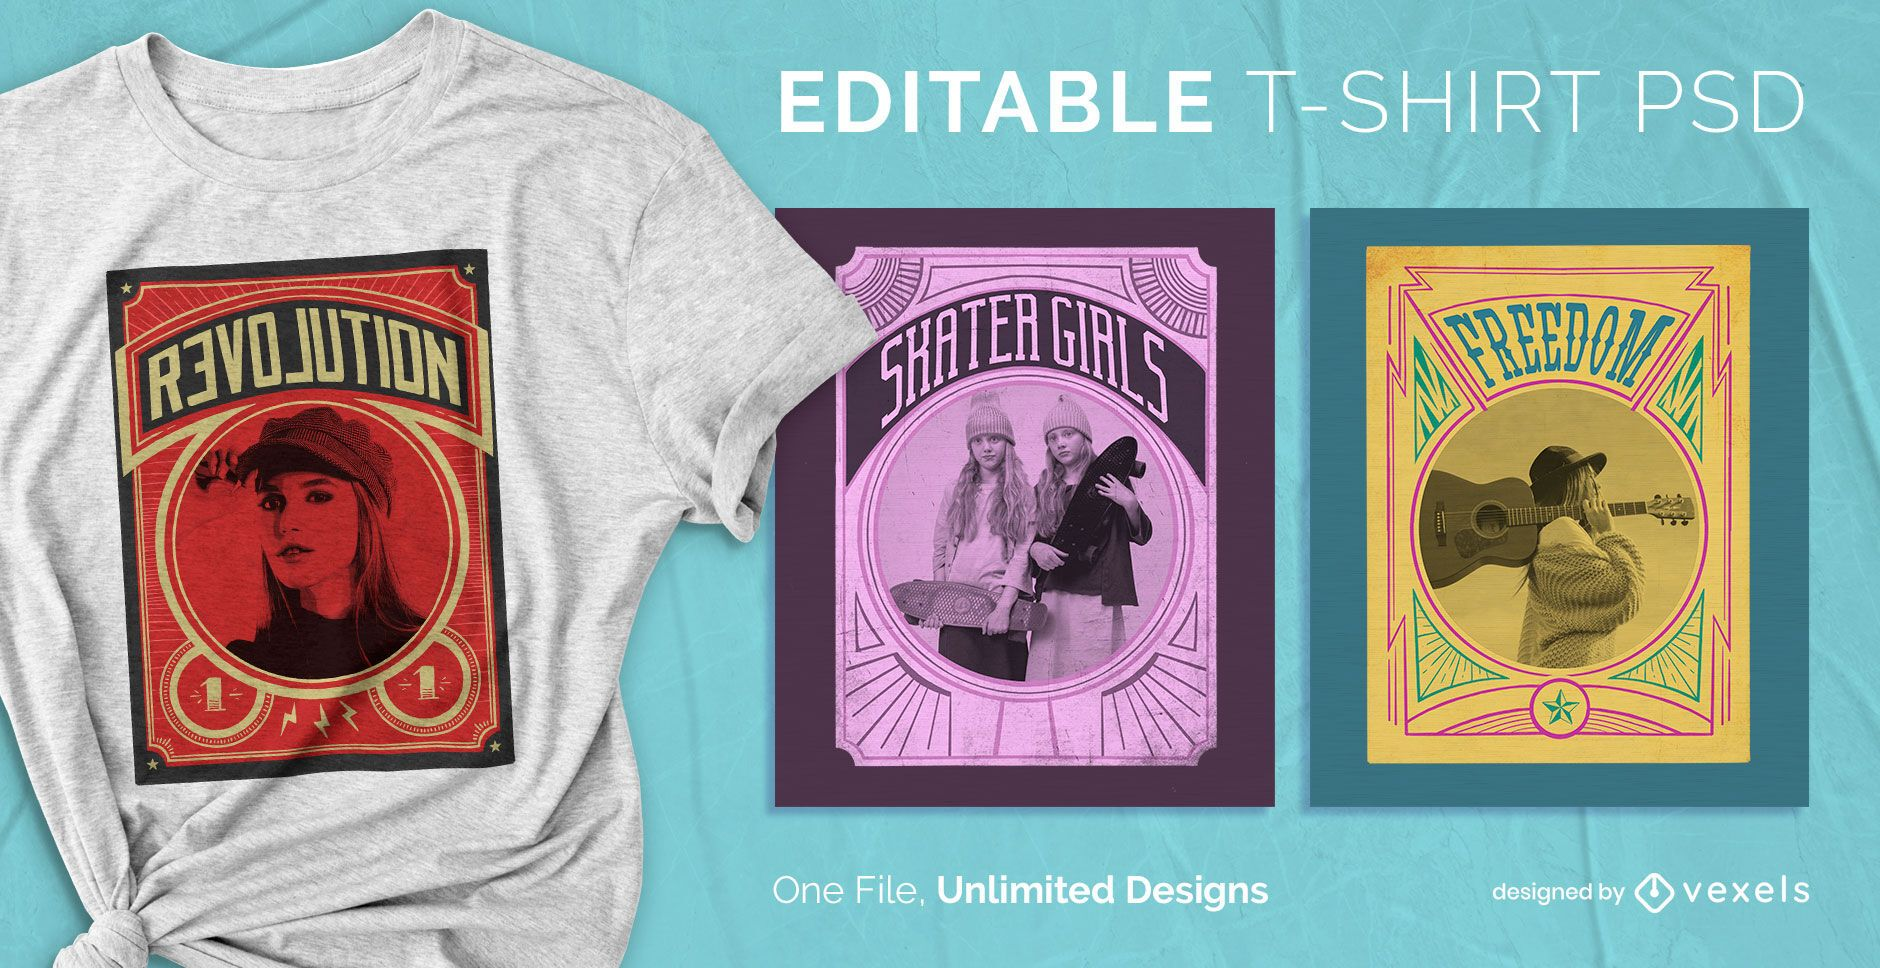 Vintage poster scalable t-shirt psd